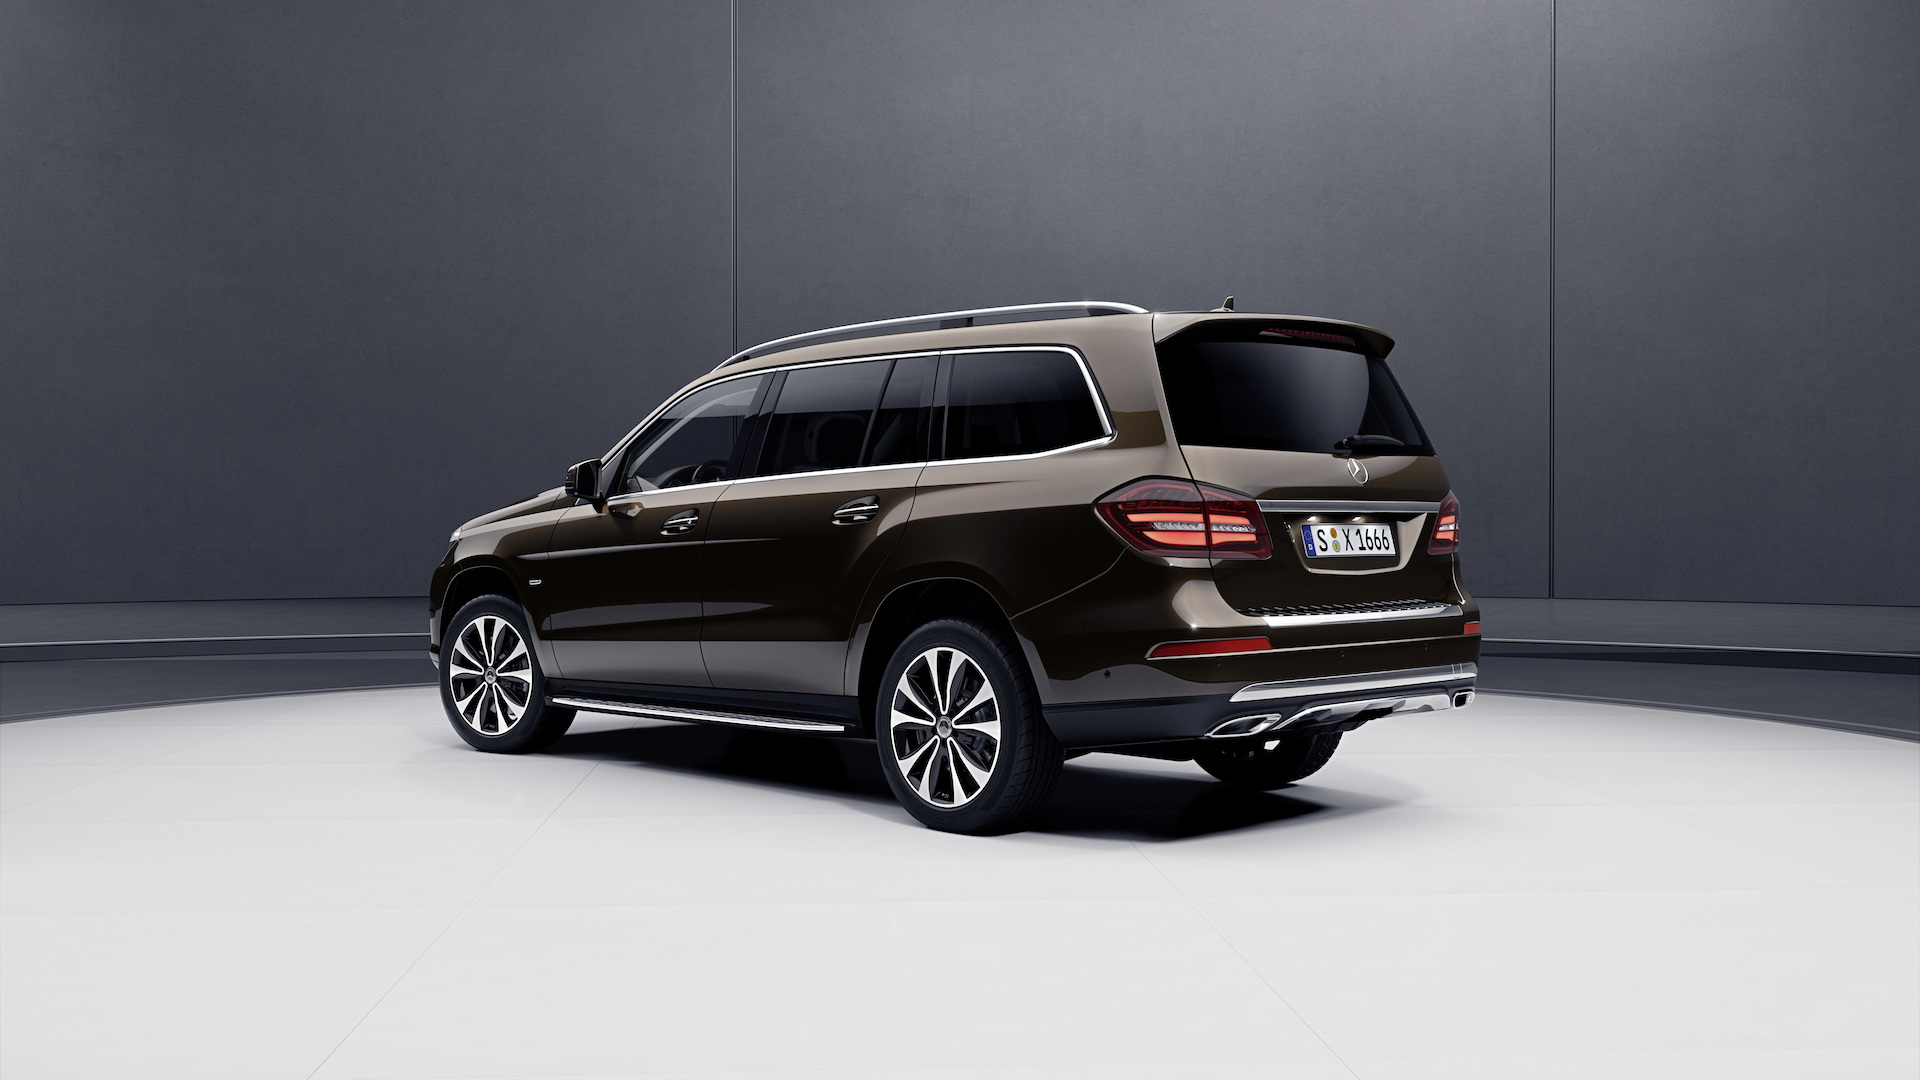 2019 Mercedes-Benz GLS Grand Edition